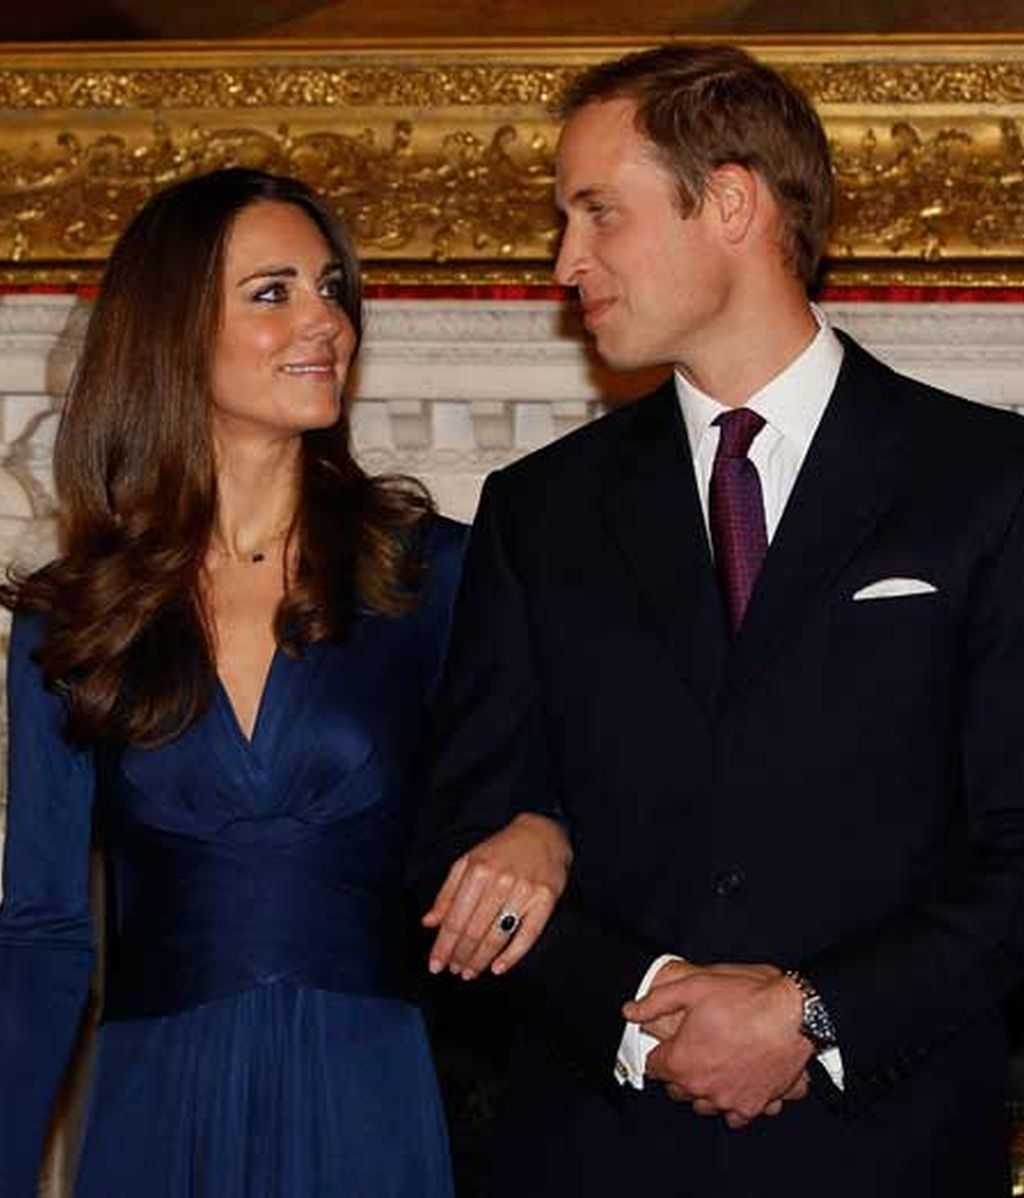 El anillo de Lady Di sella el compromiso de Guillermo y Kate Middleton